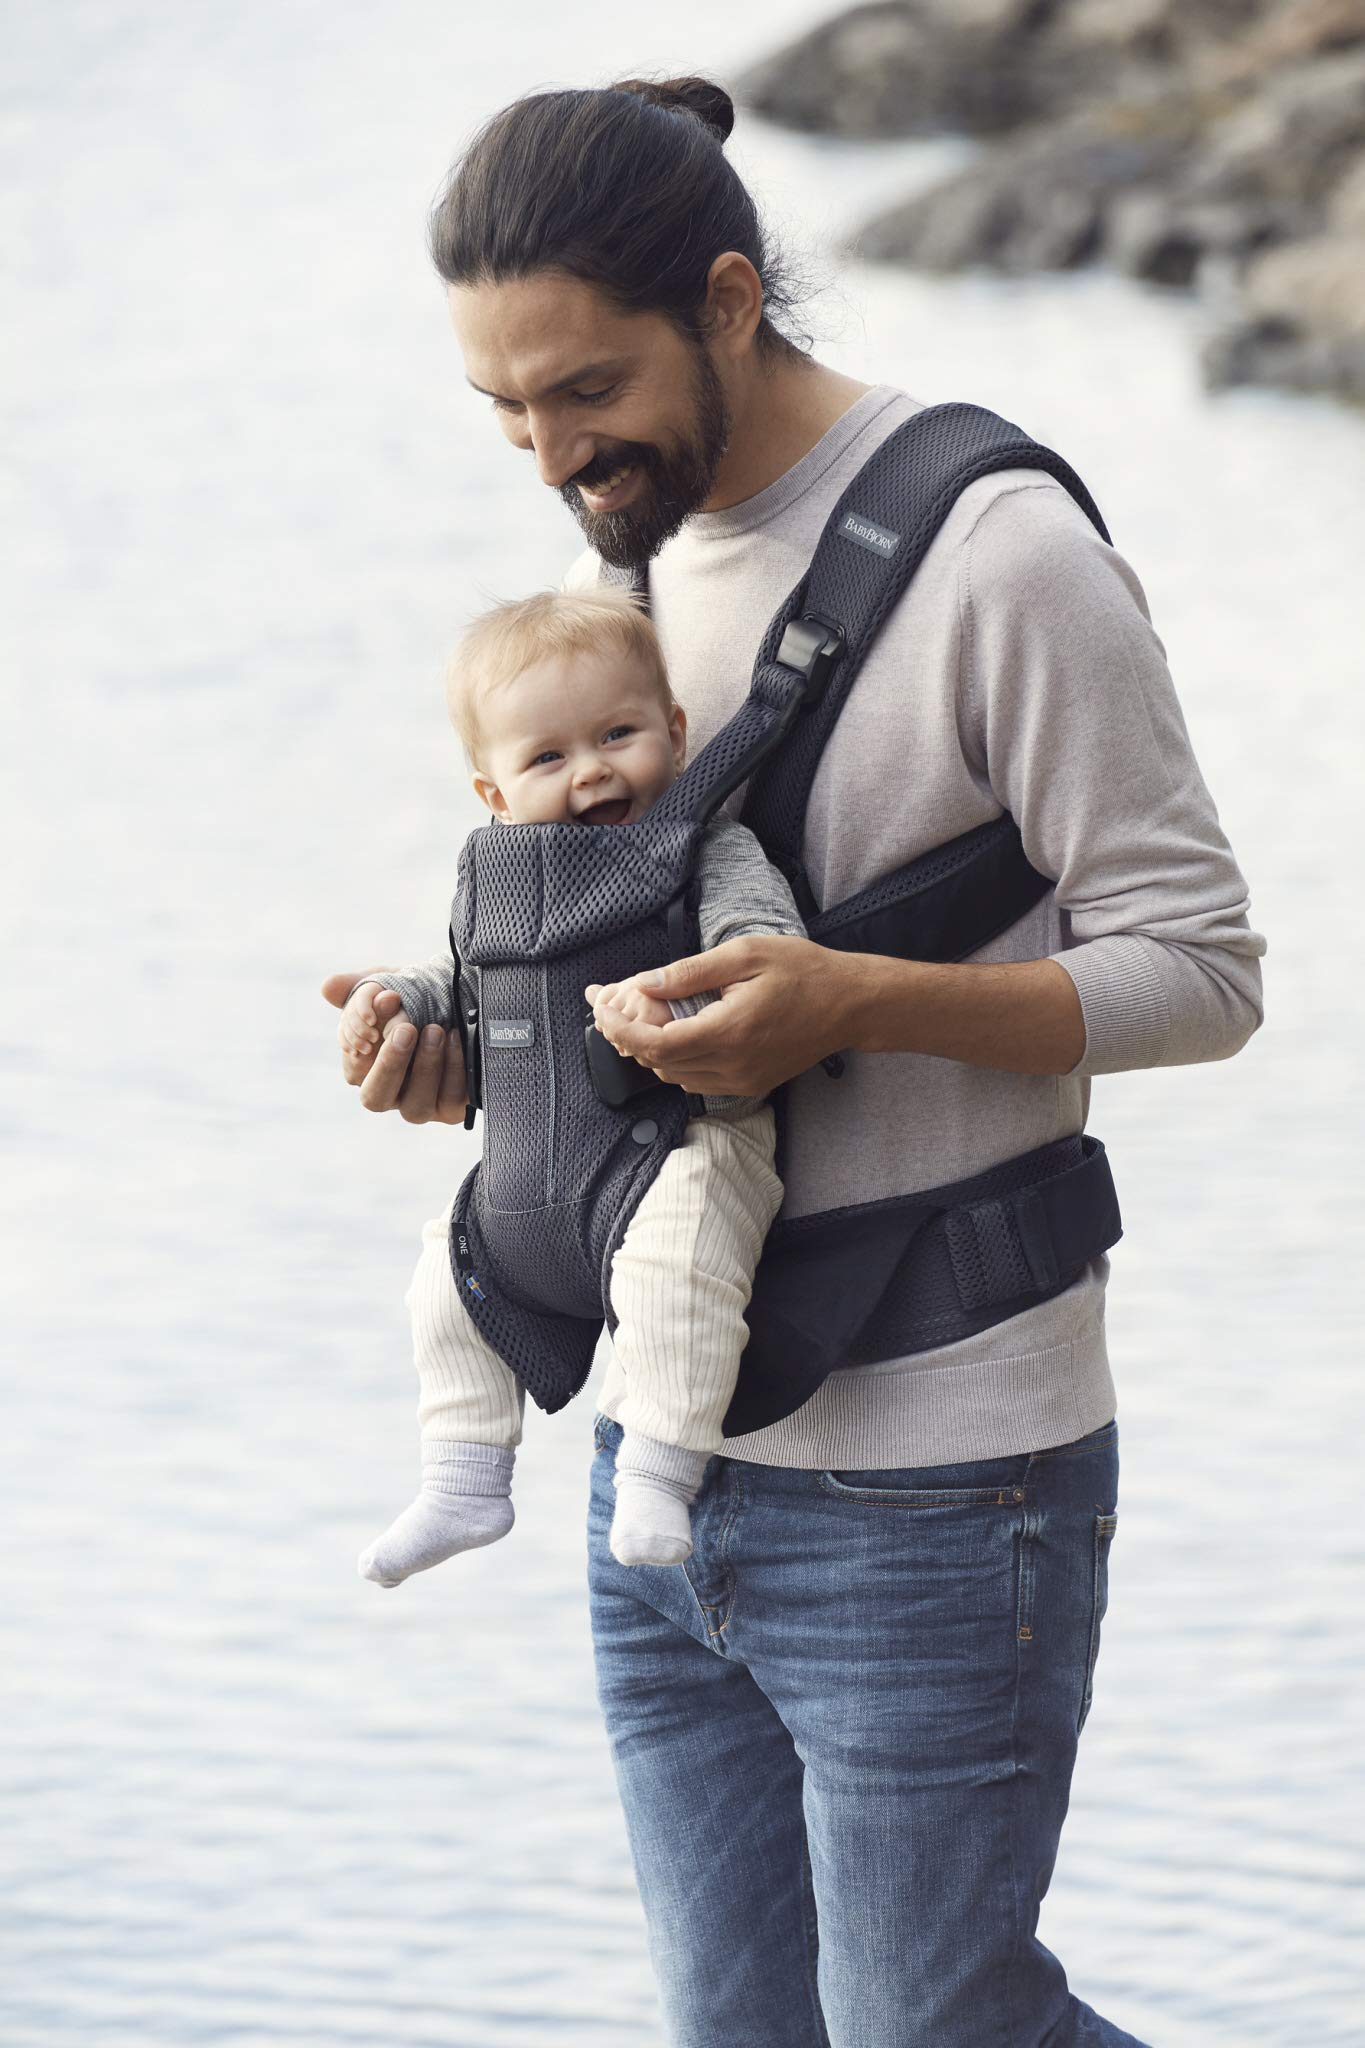 BABYBJÖRN Baby Carrier One Air, 3D Mesh, Anthracite, 2018 Edition Baby Bjorn The latest version (2018) with soft and breathable mesh that dries quickly Ergonomic baby carrier with excellent support 4 carrying positions: facing in (two height positions), facing out or on your back 4